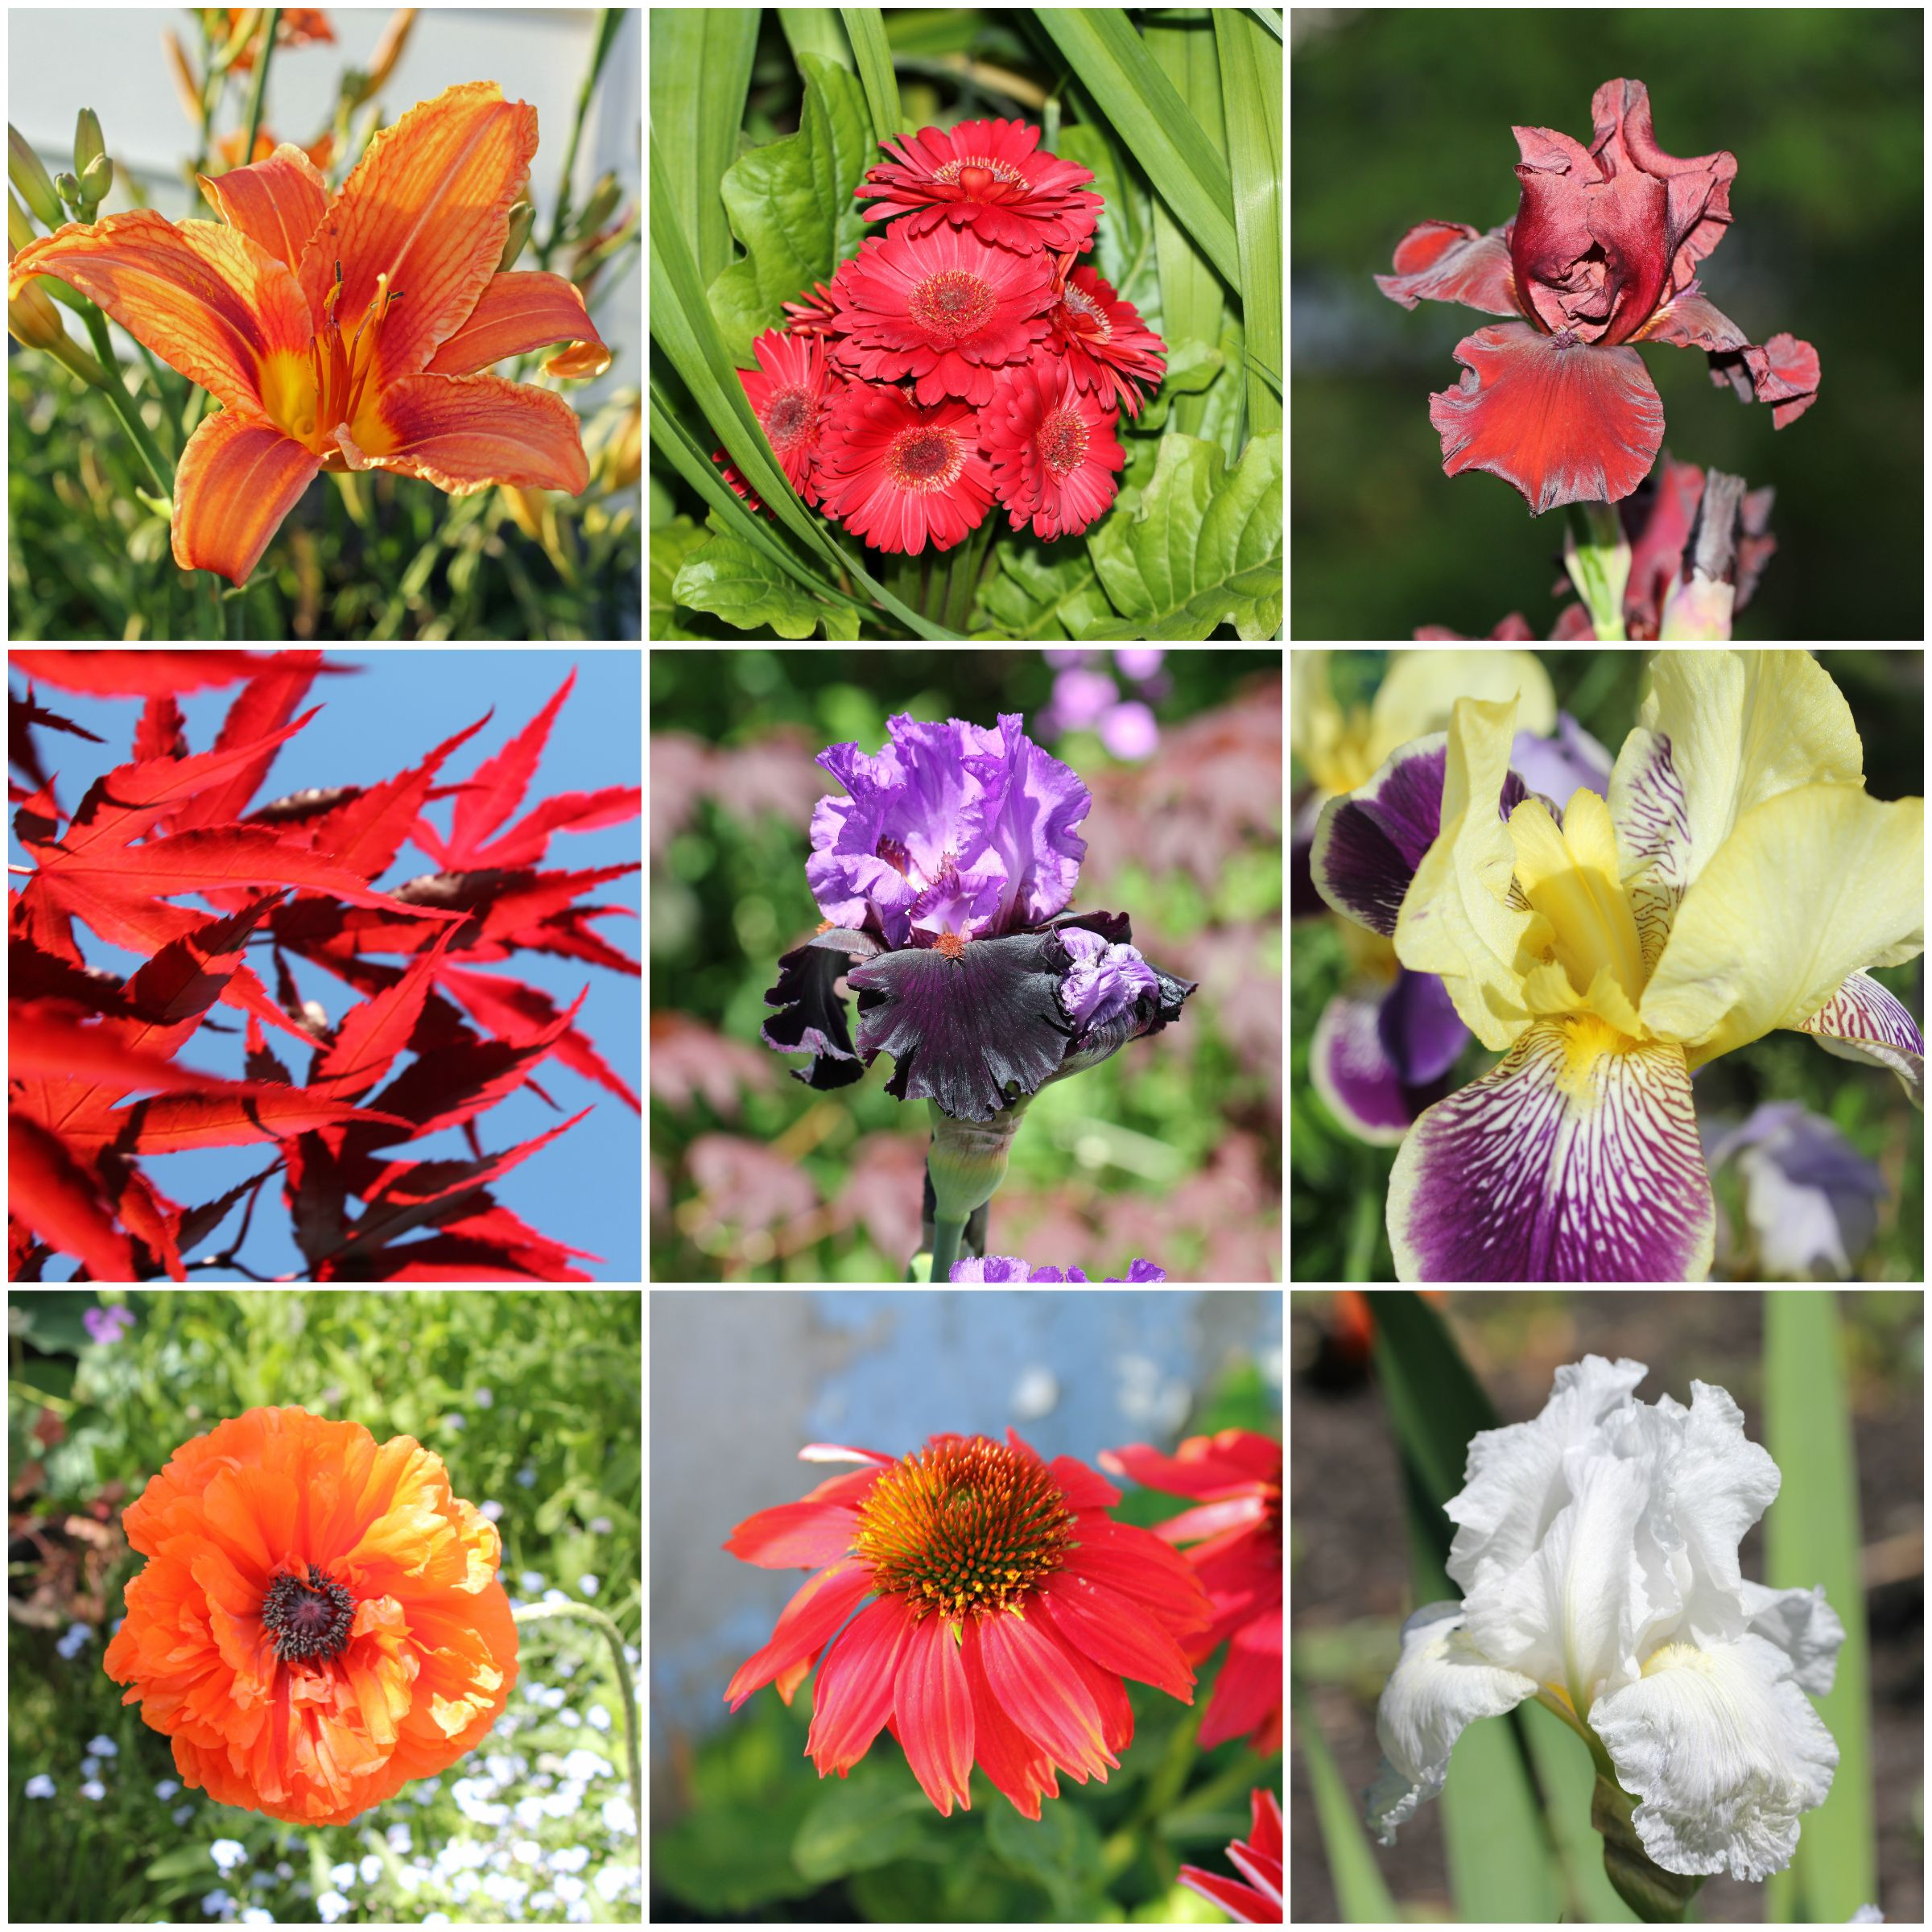 It's been a long winter, so I made a photo collage of the flowers from my garden in 2014. (The poppy is from 2013, though.) It almost seems impossible with all the snow still on the ground that anything will grow again this summer -- but it will!